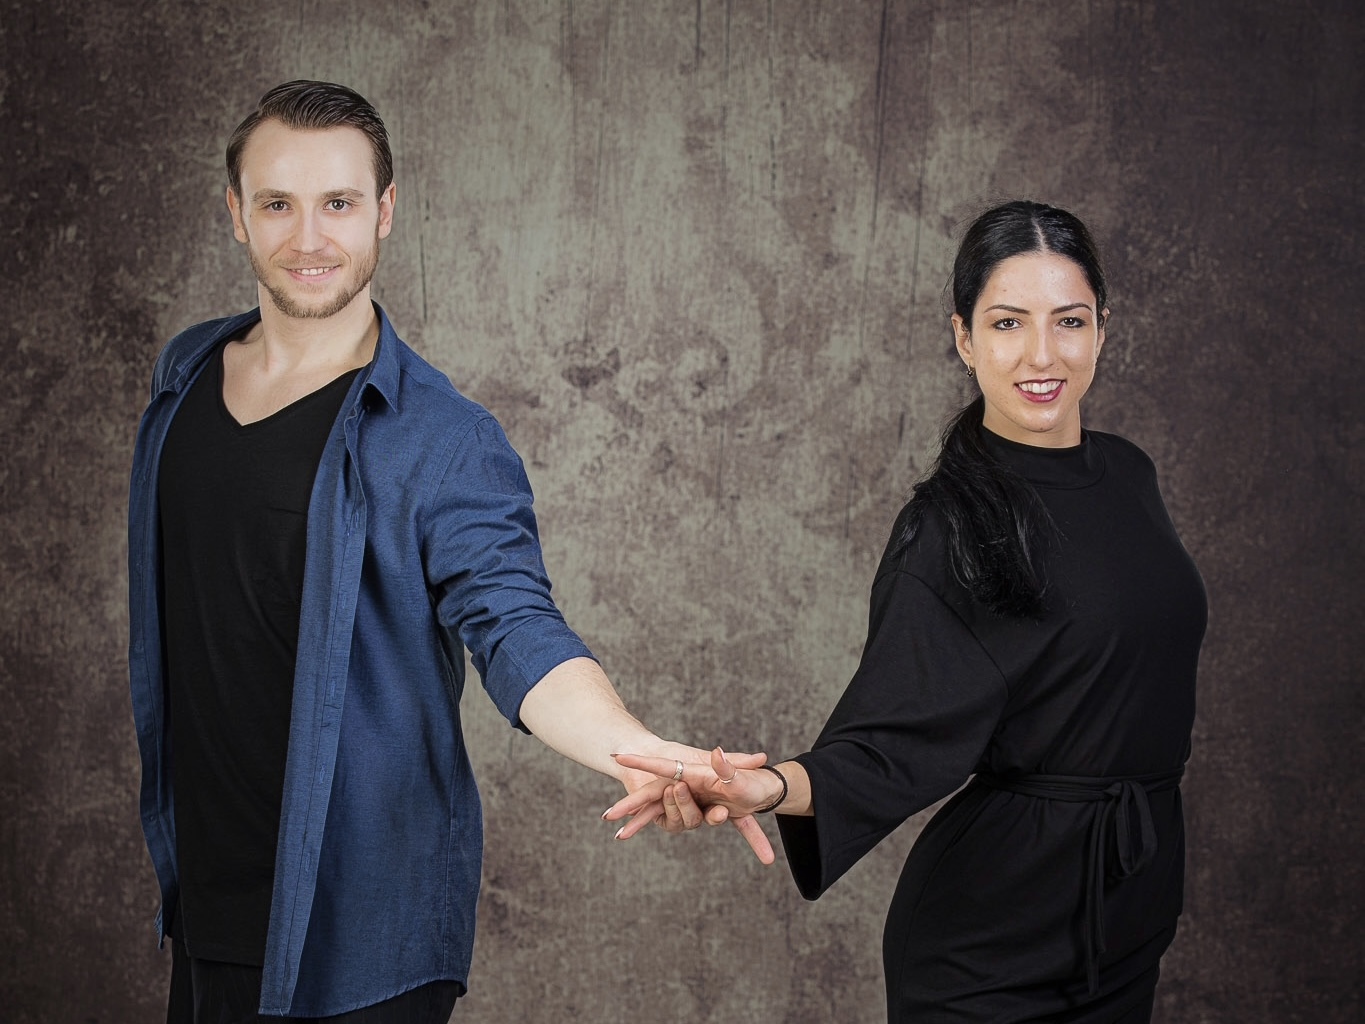 Wedding dance lessons in central London